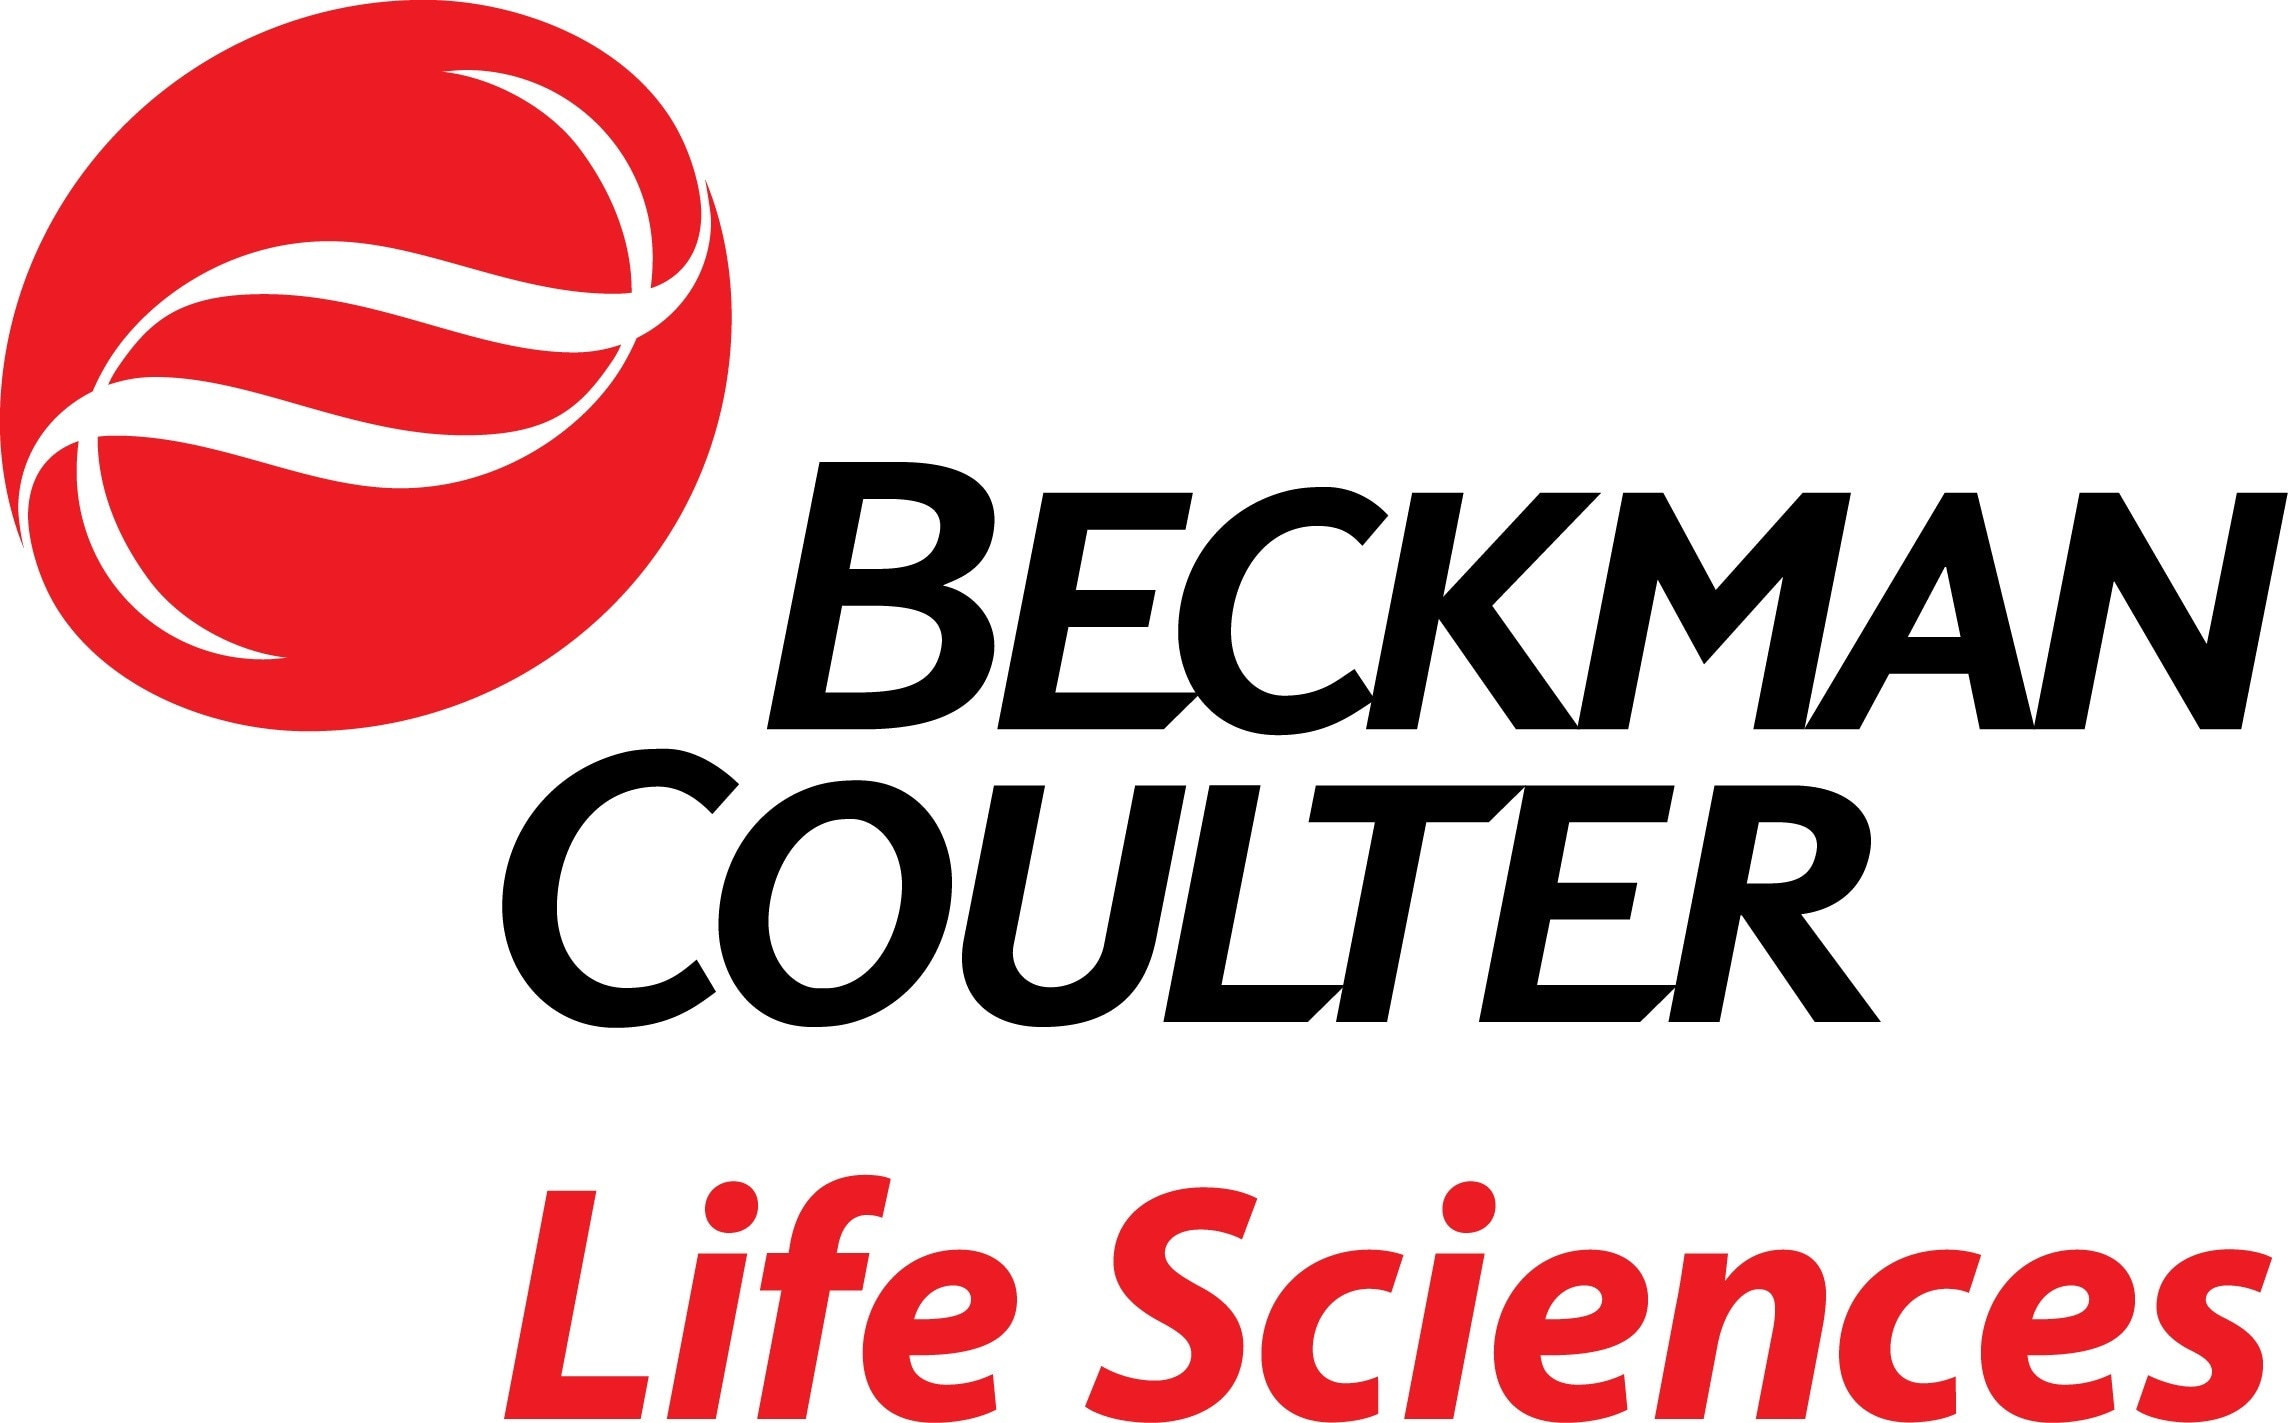 Beckman Coulter Life Sciences  - Flow Cytometry logo.